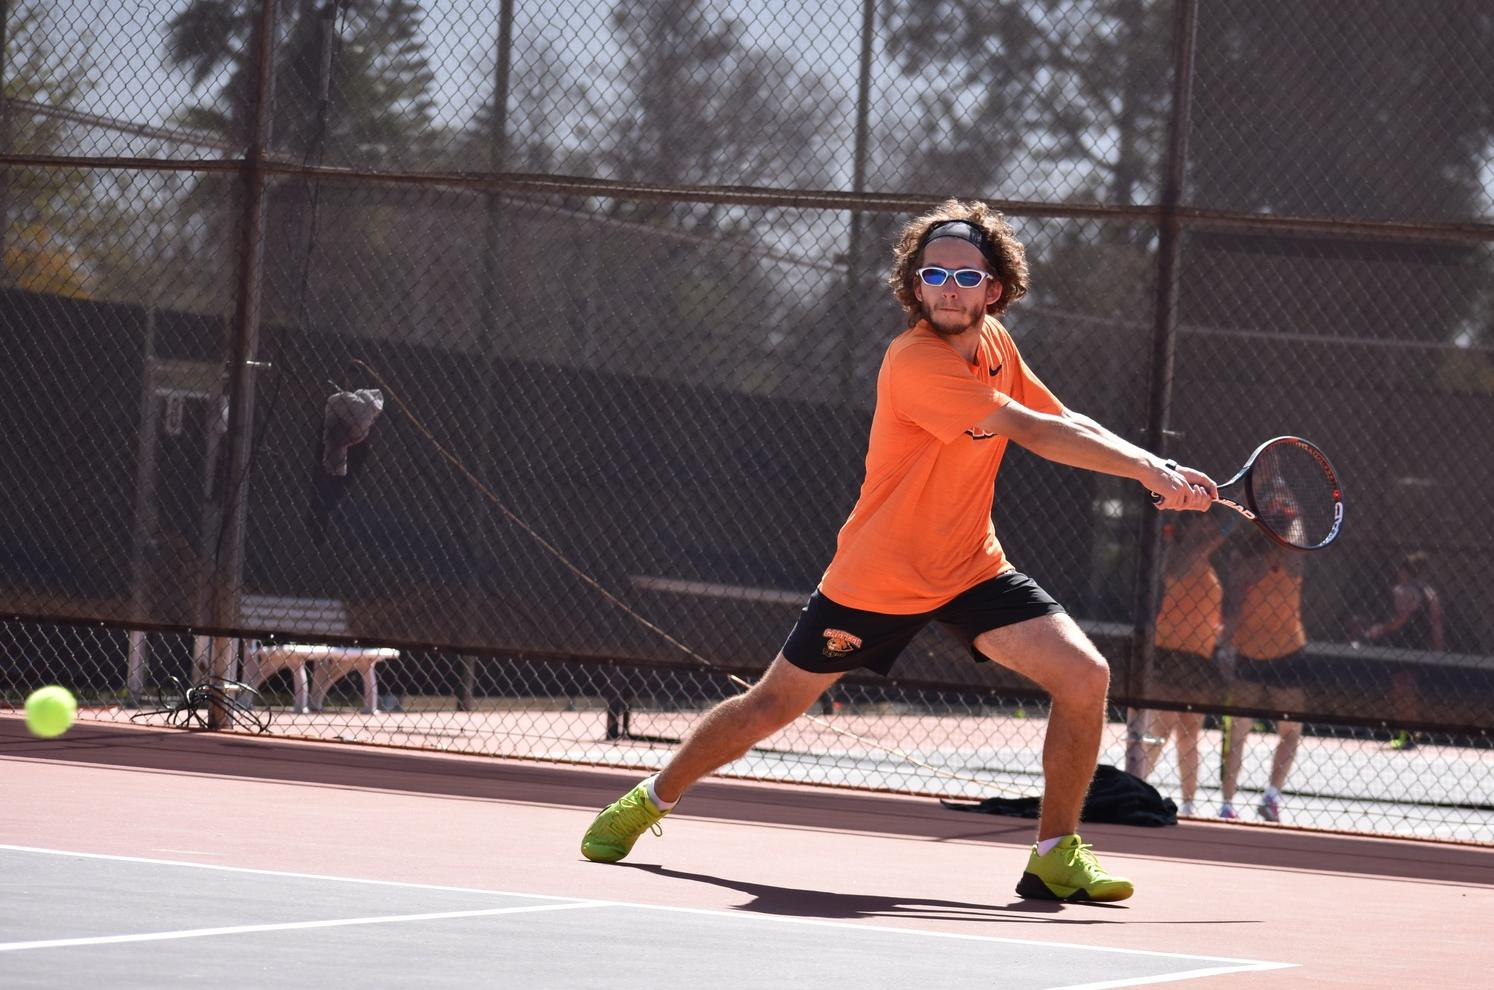 Valencic's Upset Leads Men's Tennis at The Ojai, Day 1